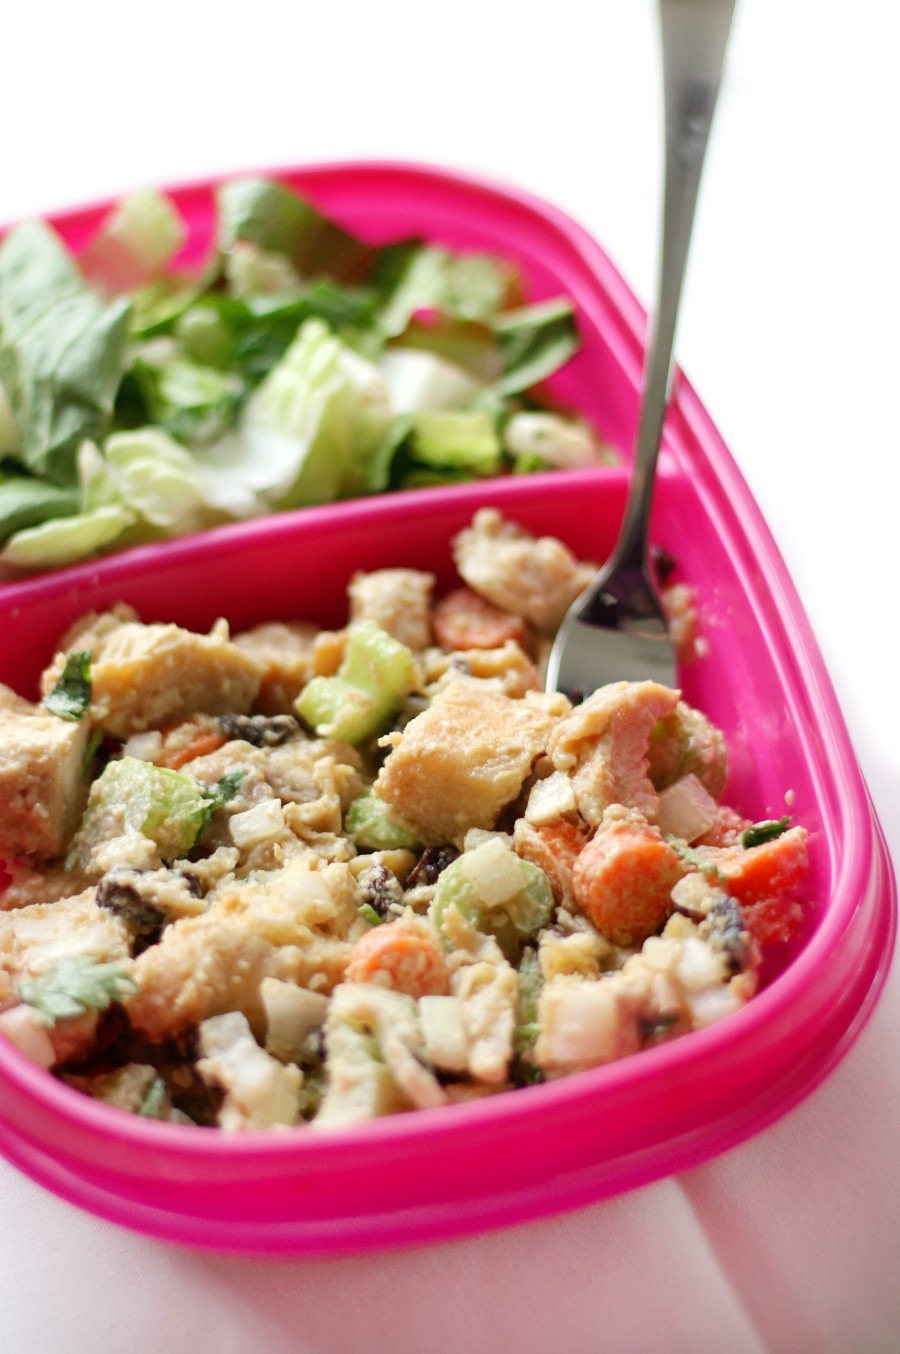 tahini-chicken-salad-in-pink-meal-prep-container